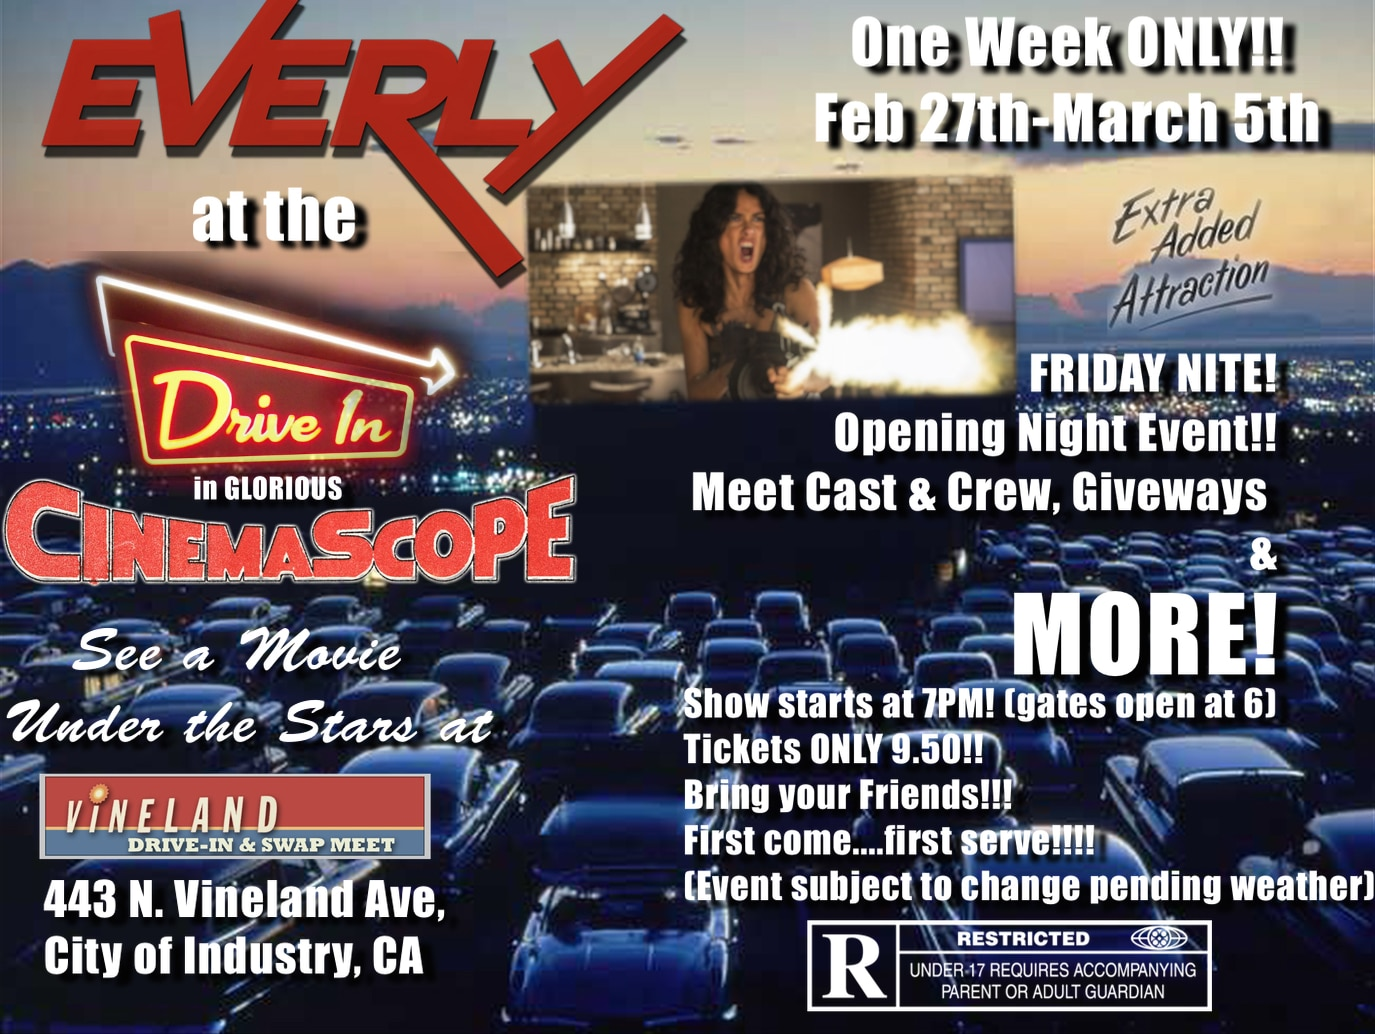 everly - UPDATE: Two Everly Events This Weekend Including Opening Night at The Vineland Drive-In